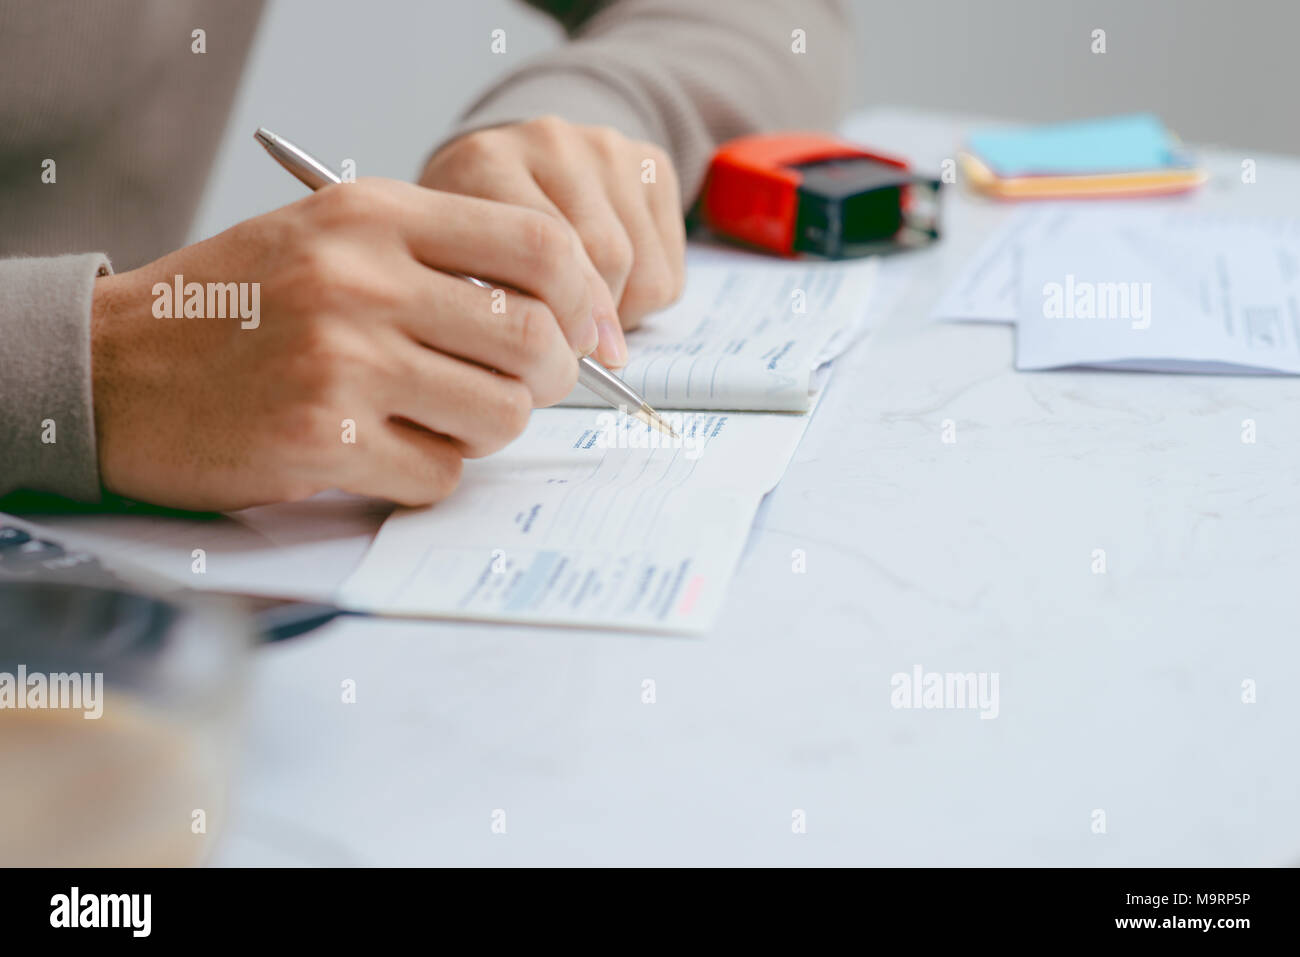 Man writing a payment check at the table with calculator and stamp - Stock Image